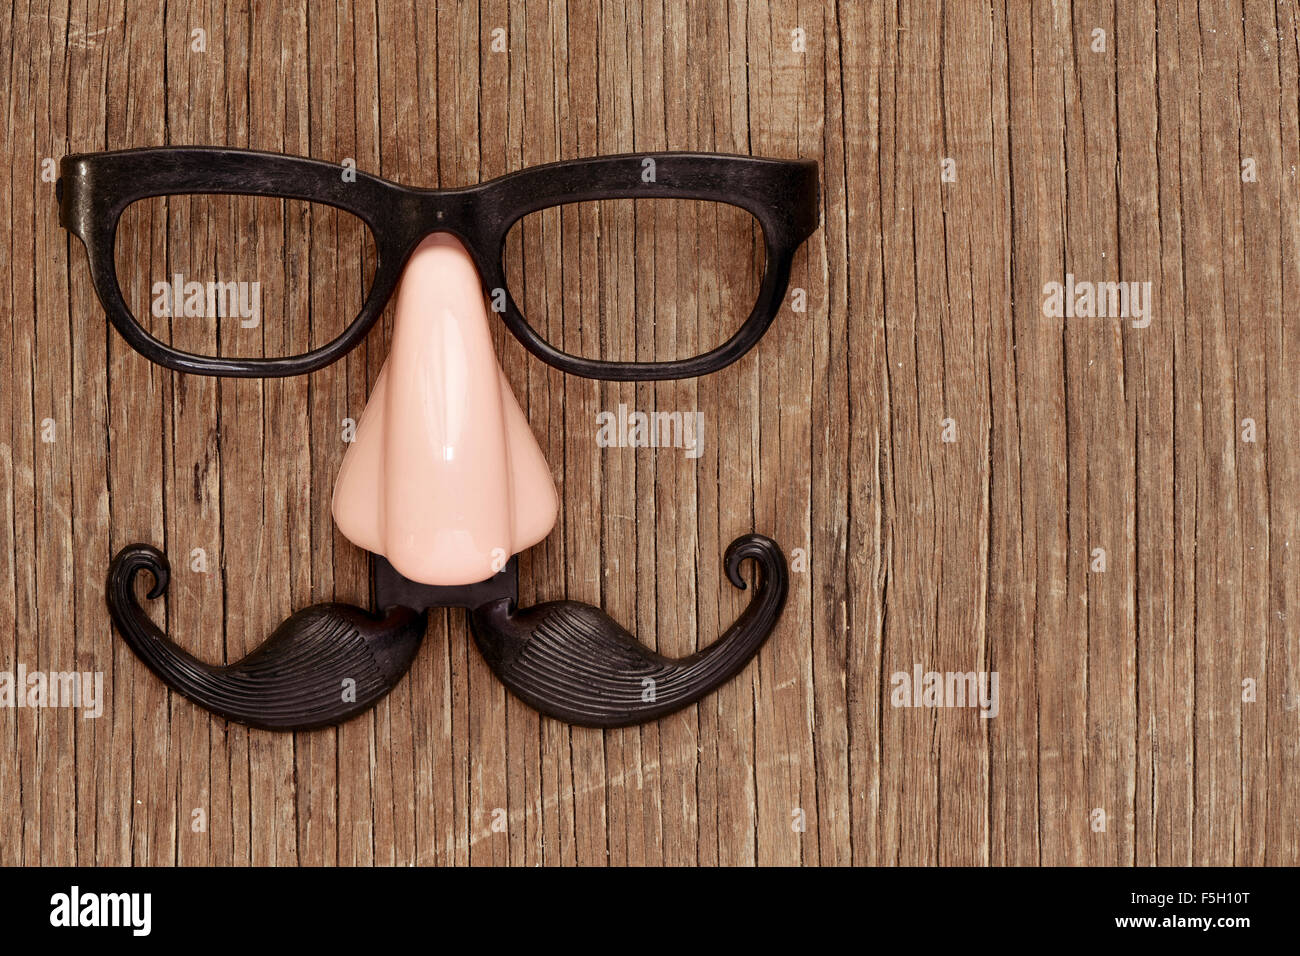 a fake mustache, nose and eyeglasses on a rustic wooden surface - Stock Image